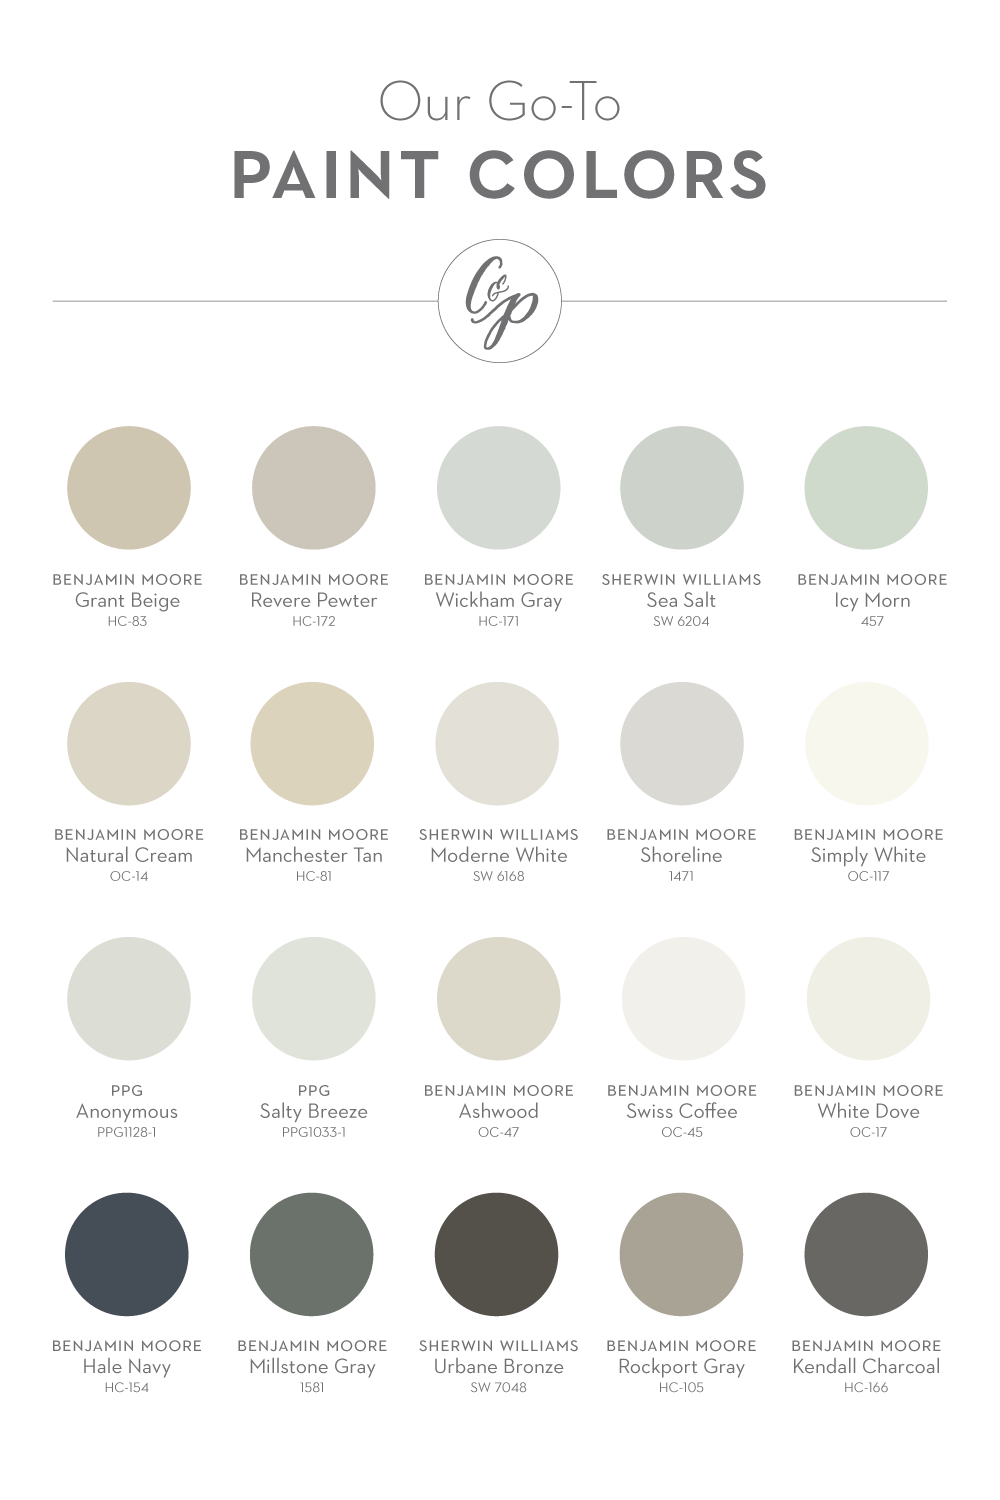 Our favorite paint colors (from left to right): Grant Beige (BM), Revere Pewter (BM), Wickham Gray (BM), Sea Salt (SW), Icy Morn (BM), Natural Cream (BM), Manchester Tan (BM), Moderne White (SW), Shoreline (BM), Simply White (BM), Anonymous (PPG/Porter), Salty Breeze (PPG/Porter), Ashwood (BM), Swiss Coffee (BM), White Dove (BM), Hale Navy (BM), Millstone Gray (BM), Urbane Bronze (SW), Rockport Gray (BM), Kendall Charcoal (BM).